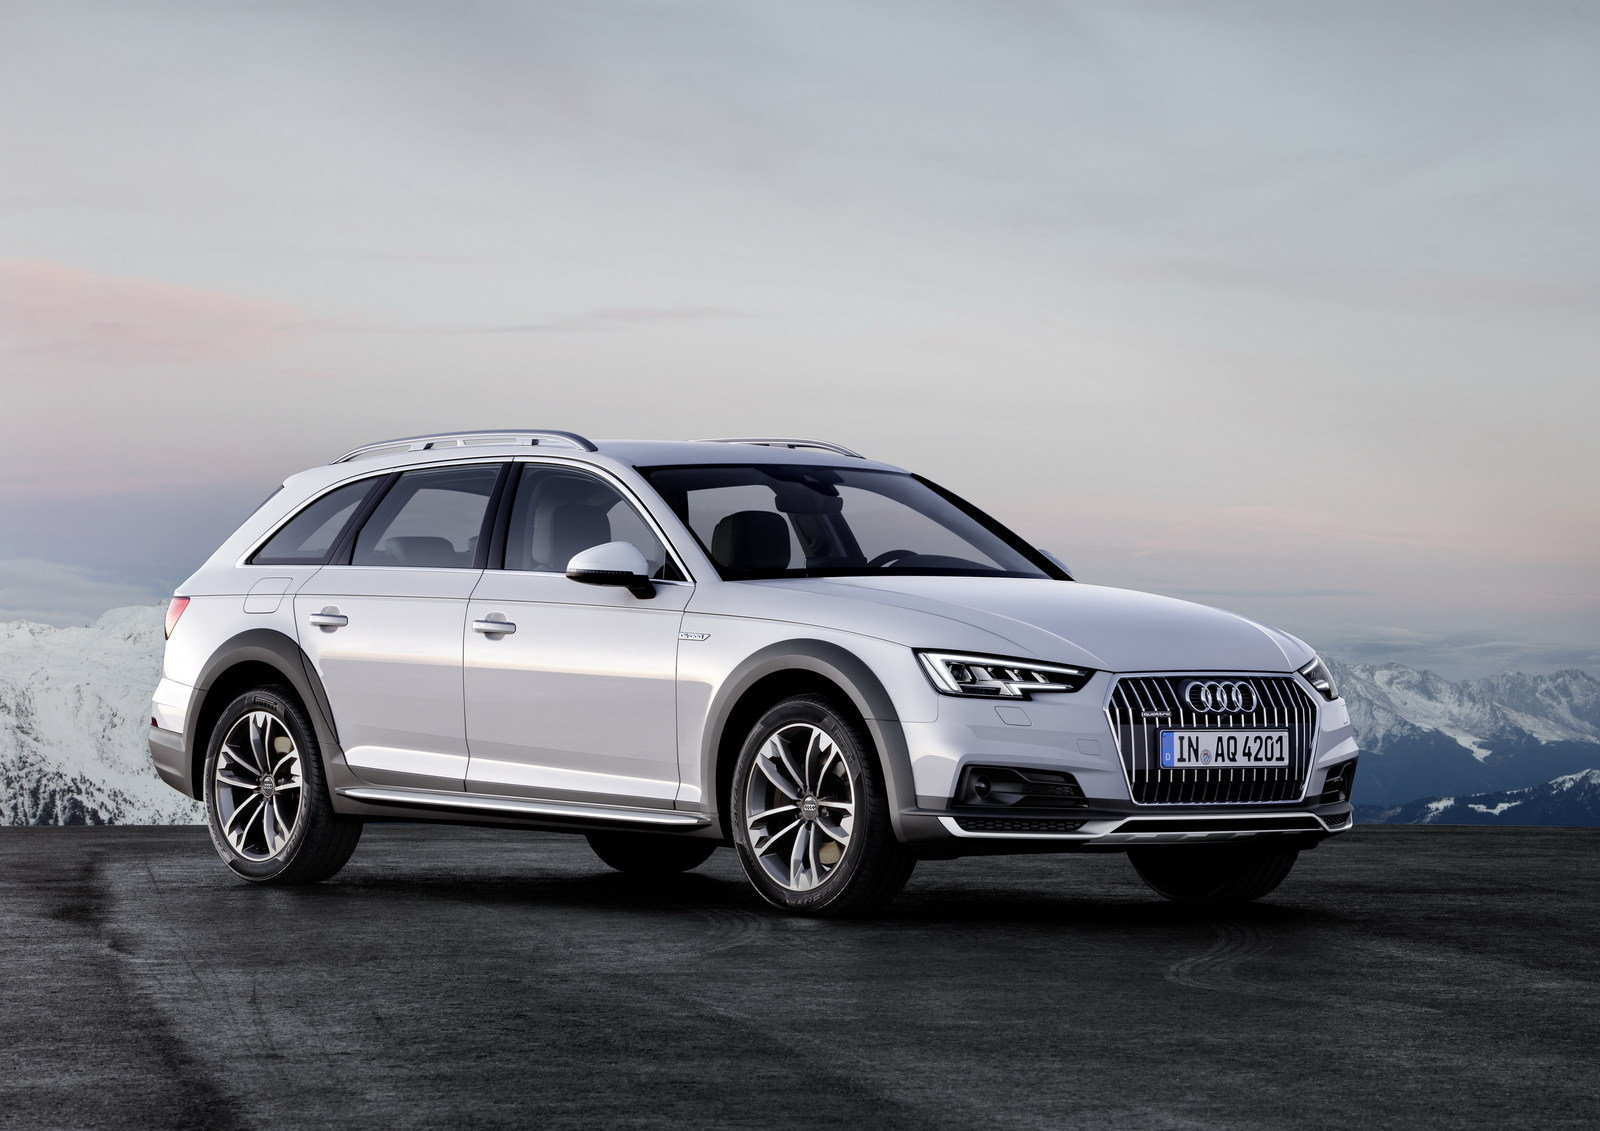 2017 audi a4 allroad quattro picture 661330 car review. Black Bedroom Furniture Sets. Home Design Ideas